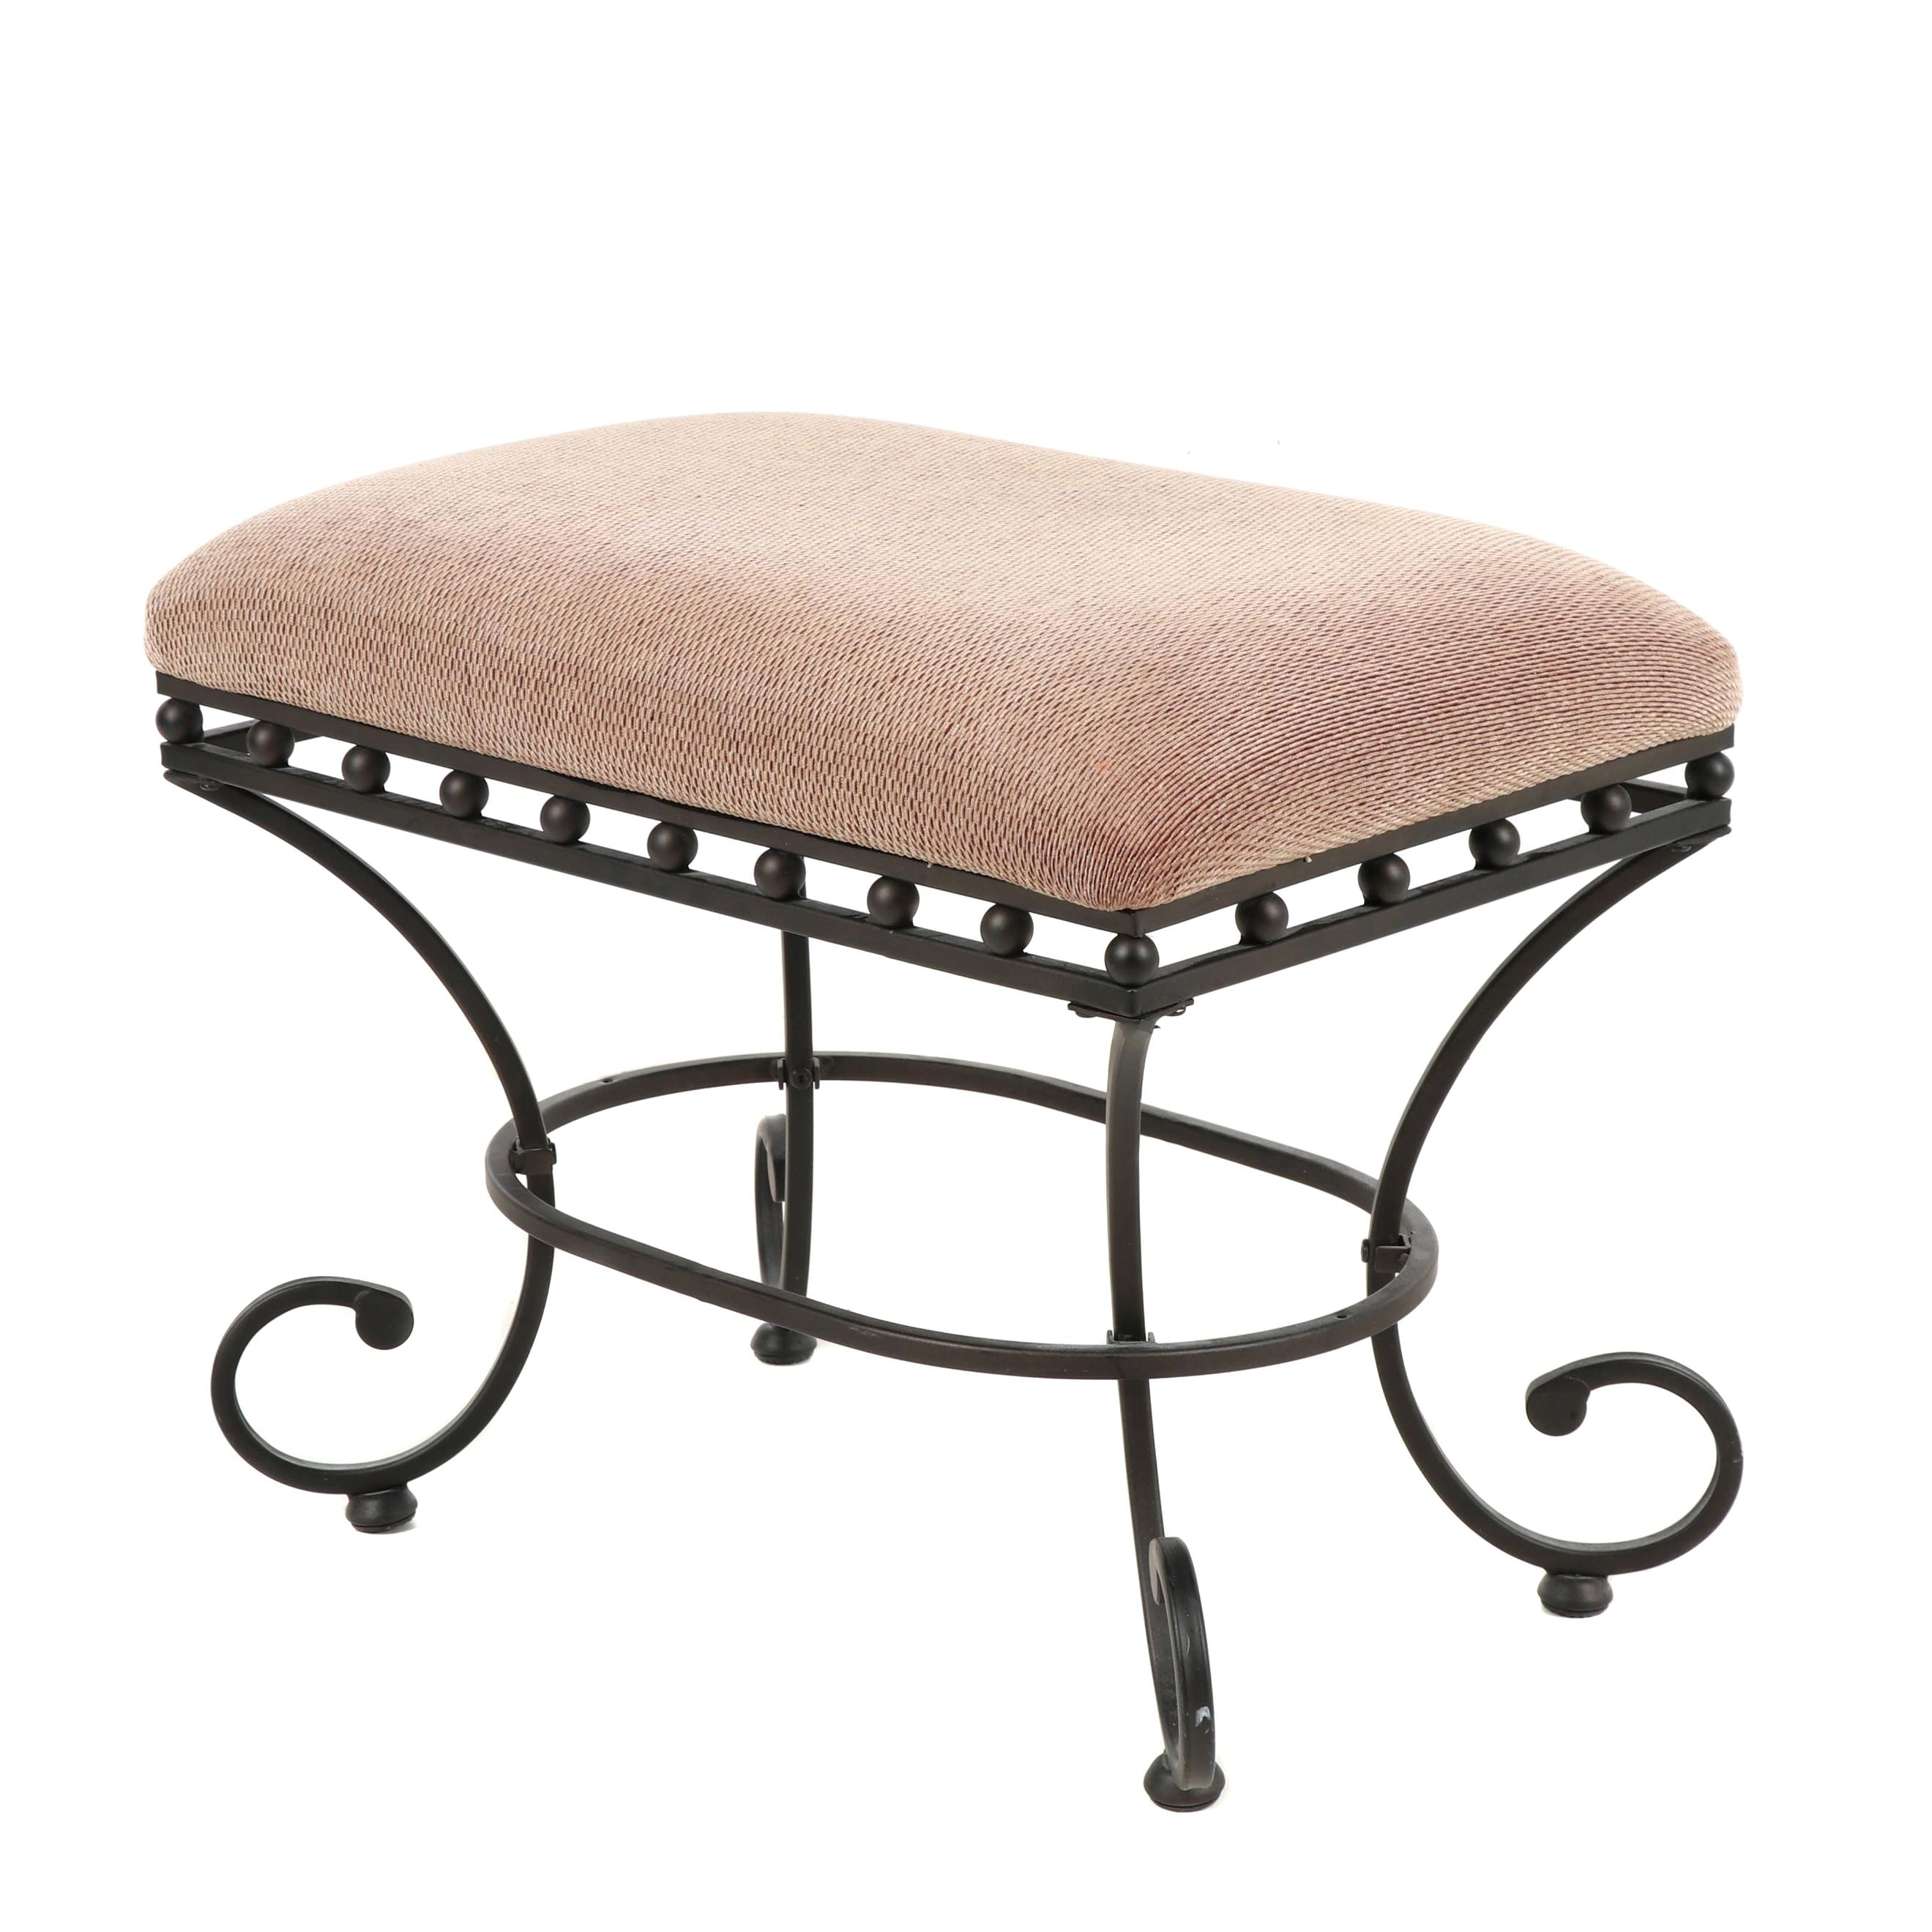 Contemporary Upholstered Bench with Scrolled Metal Legs